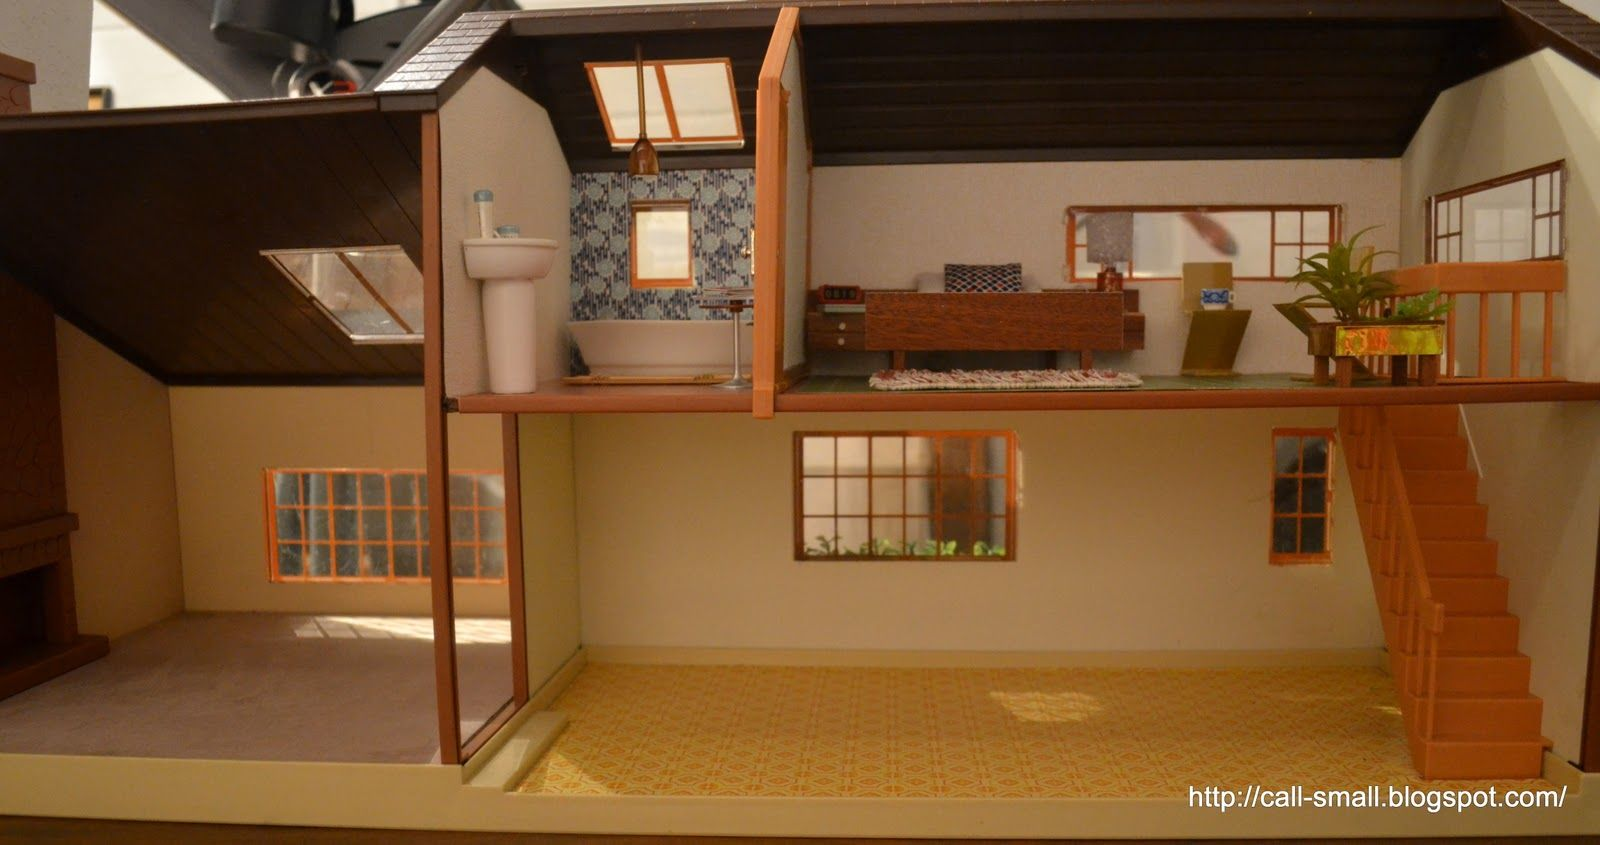 45254fbab958a36cdf95cd7df1810c1d - Tomy Smaller Homes And Gardens Dollhouse For Sale